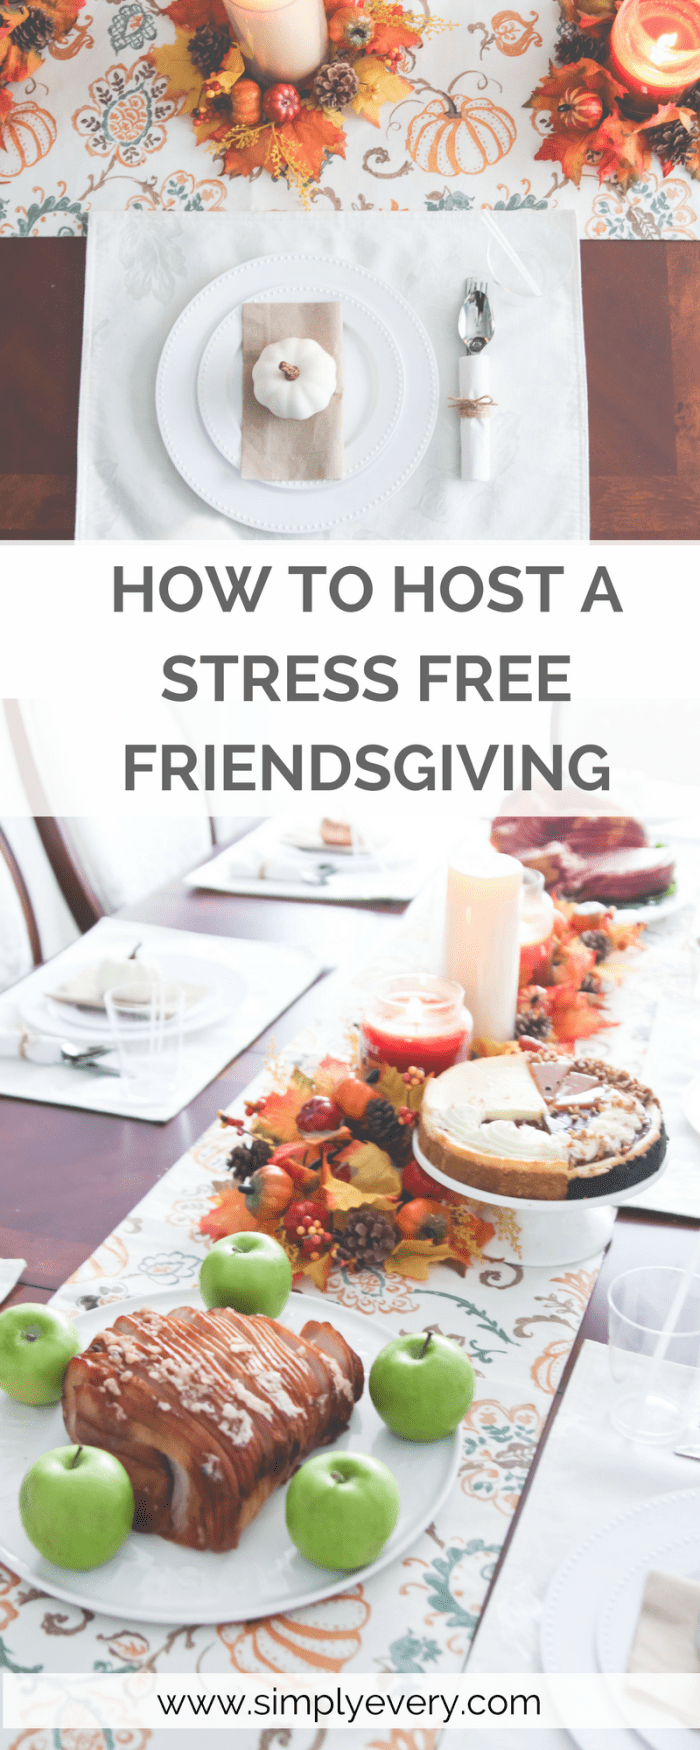 How to Host A Stress Free Friendsgiving